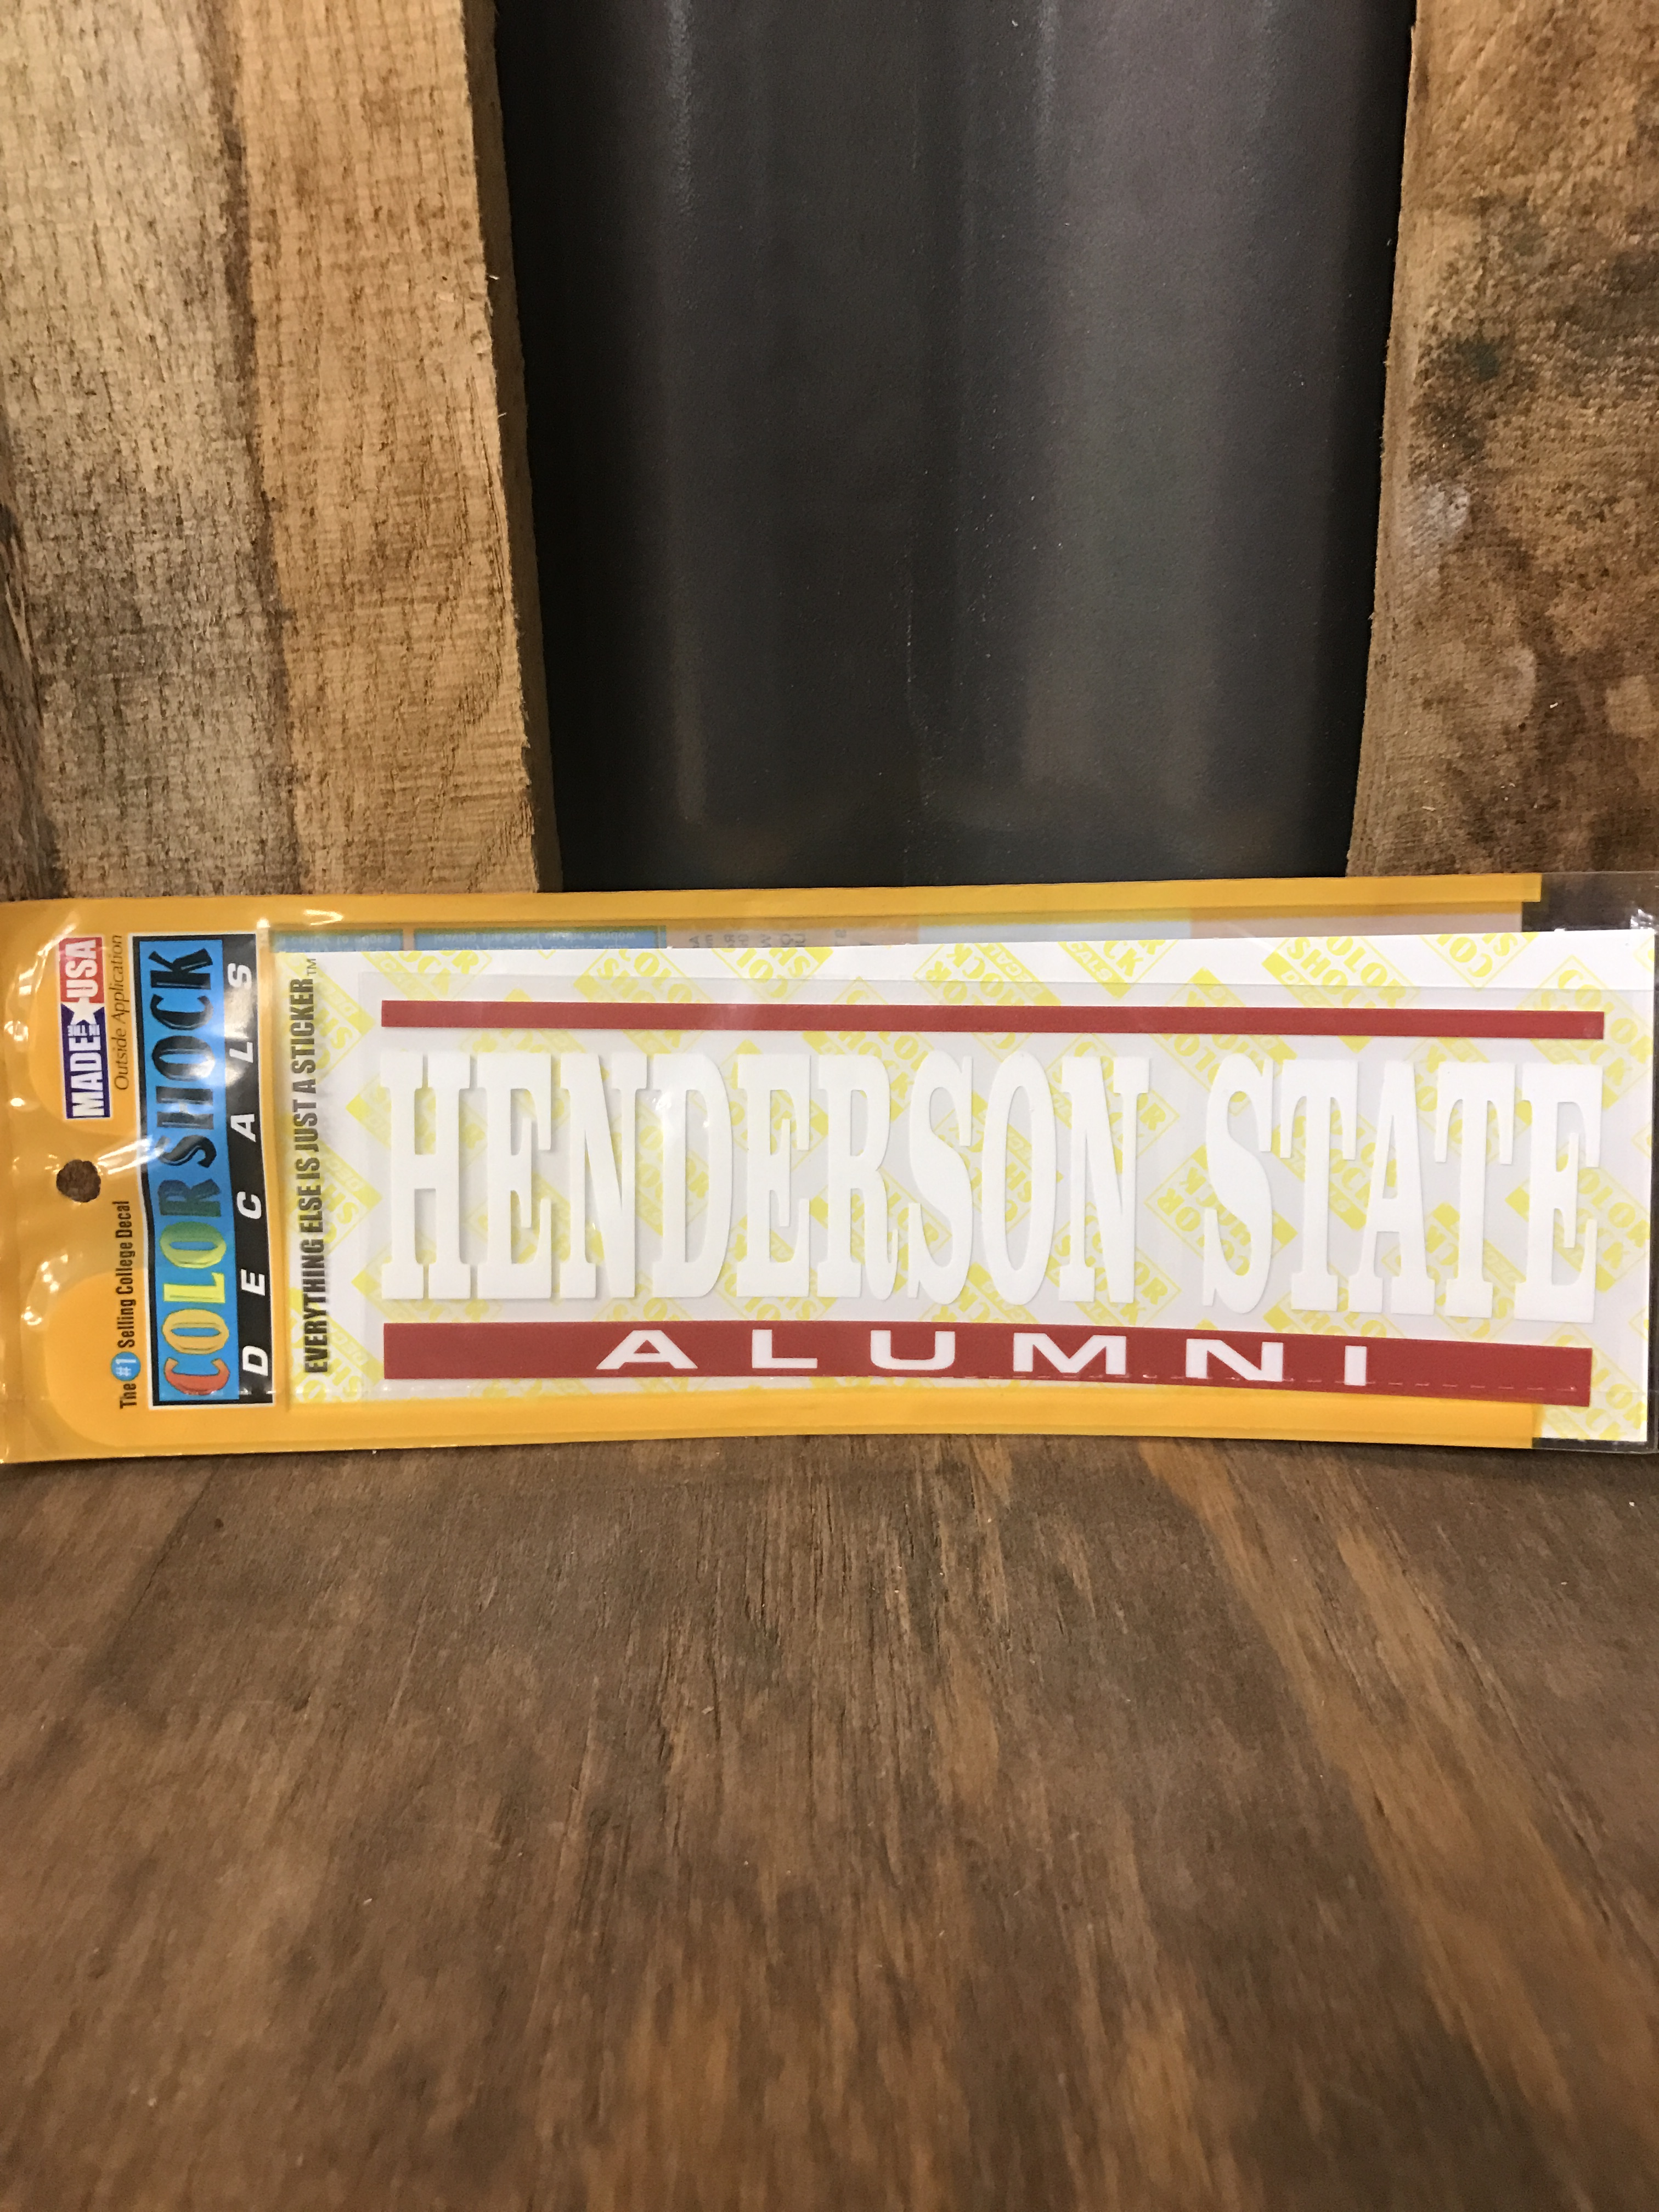 image of: HENDERSON STATE ALUMNI CAR DECAL